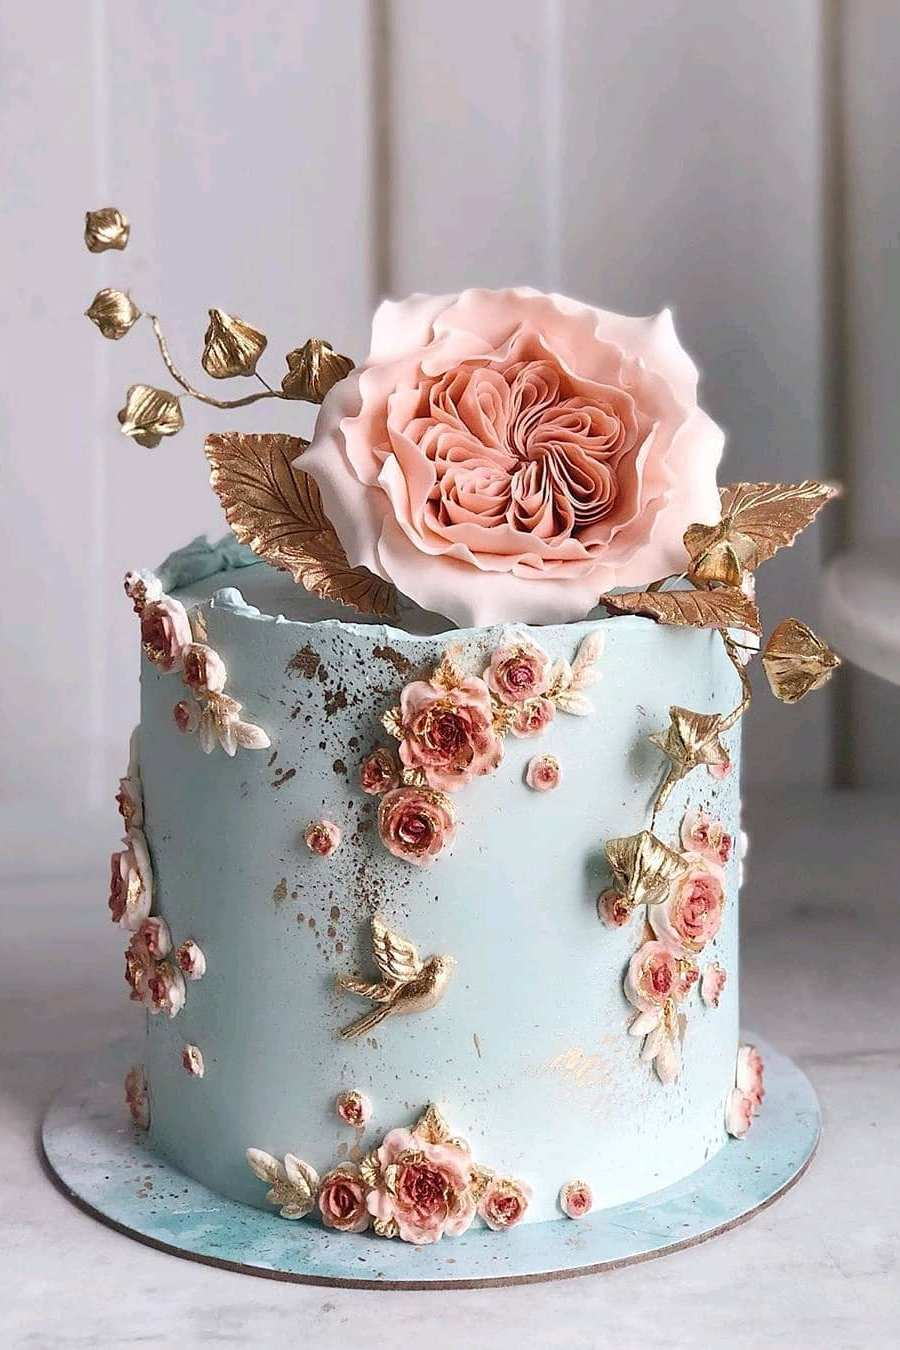 bkue and metallic gold ball work of art for wedding cake inspiration ideas